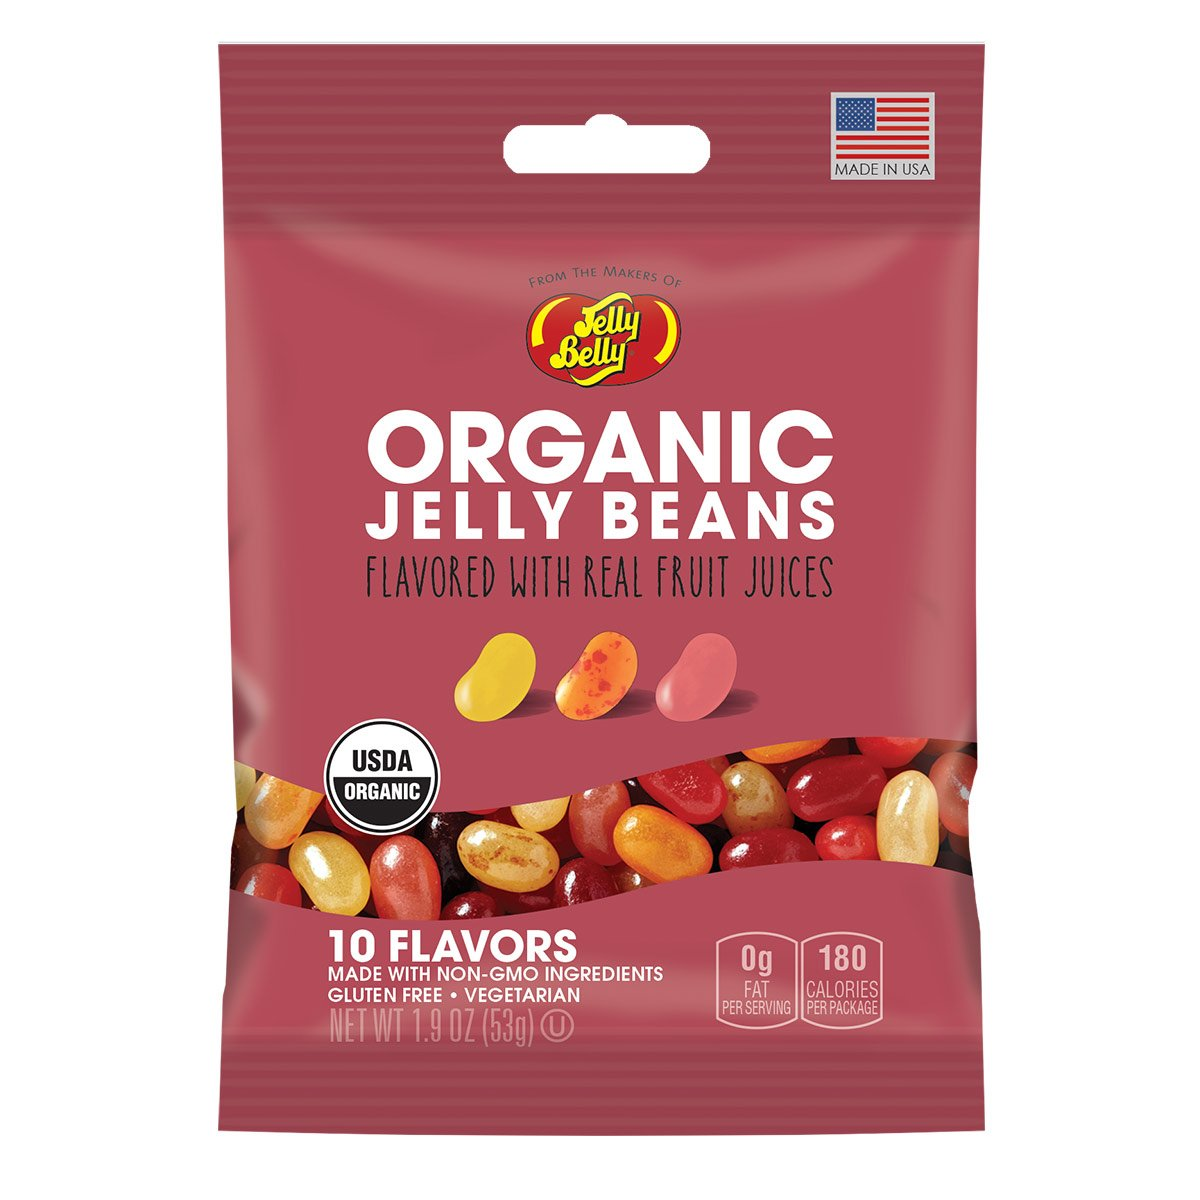 Jelly Belly Organic Jelly Beans, 10 Flavors, 1.9-oz, 12 Pack